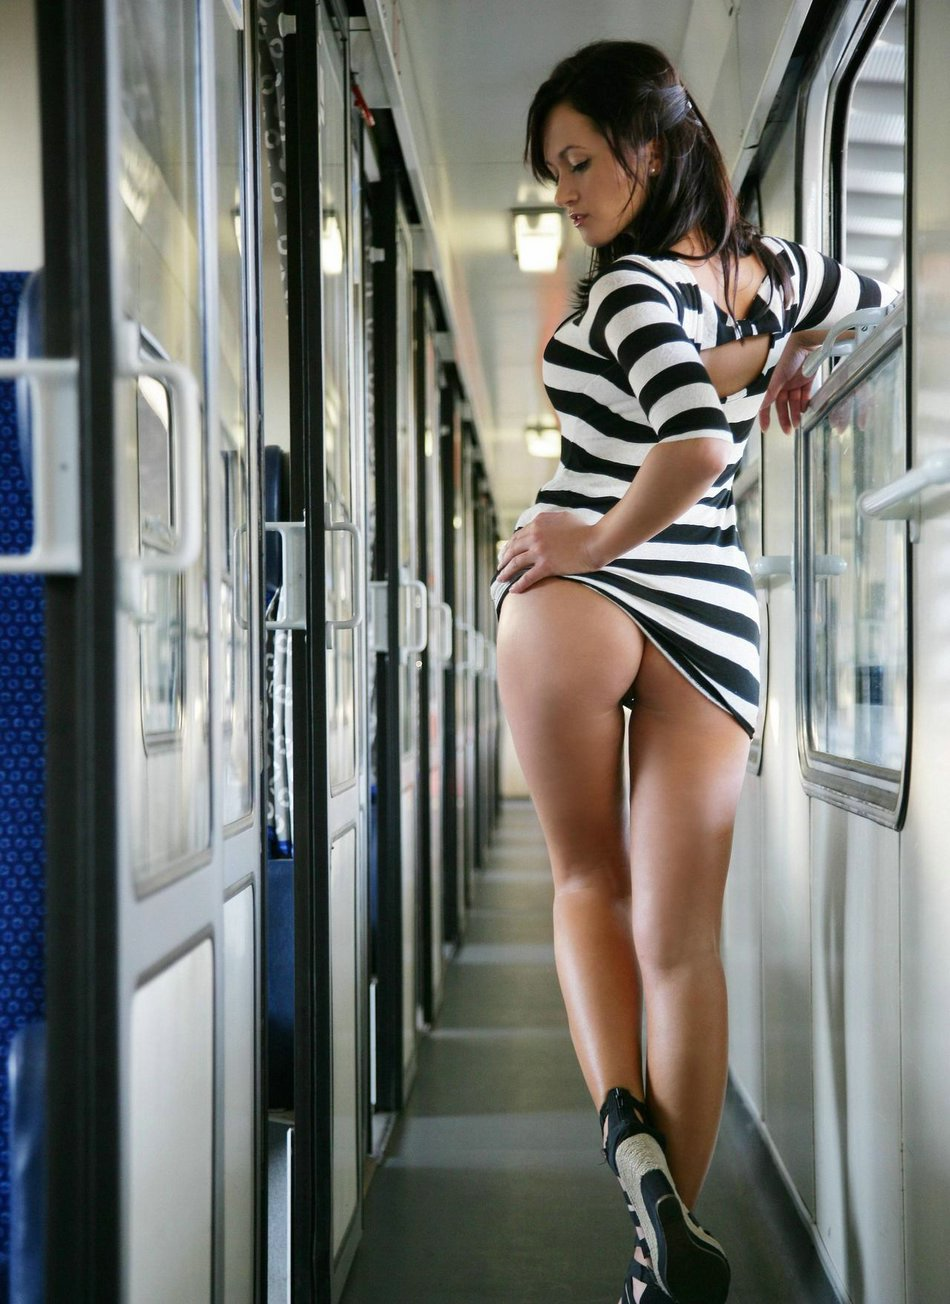 Intermitente coño en el Tren Fotos Hot Nude Voyeur